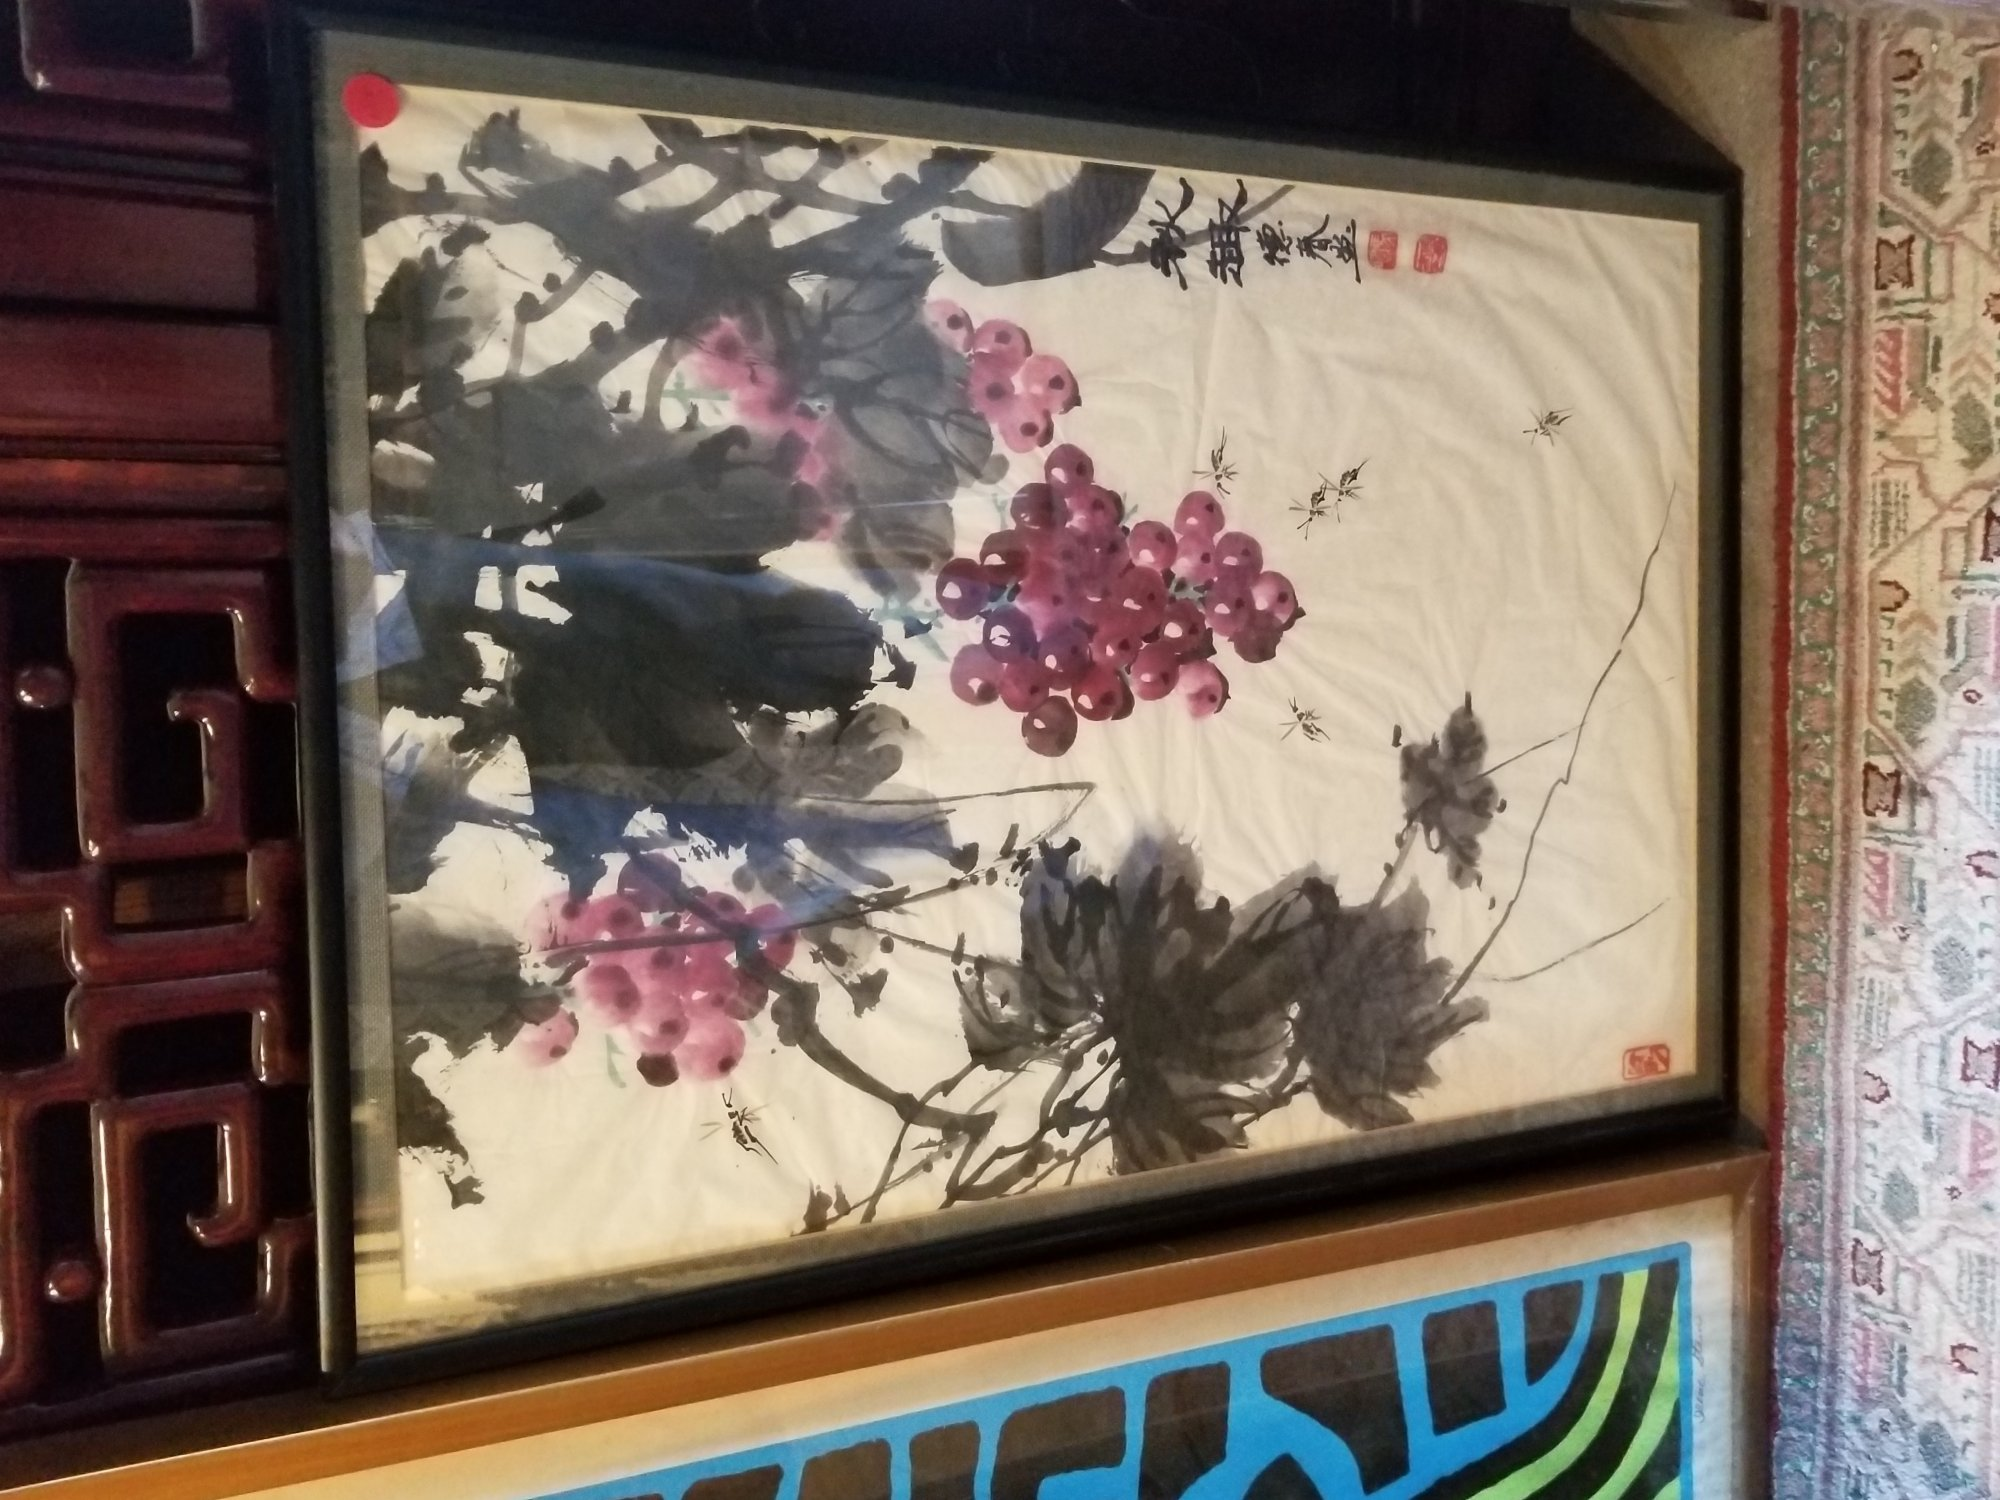 20th century Chinese water color painting of grapes on a vine, framed - PXY